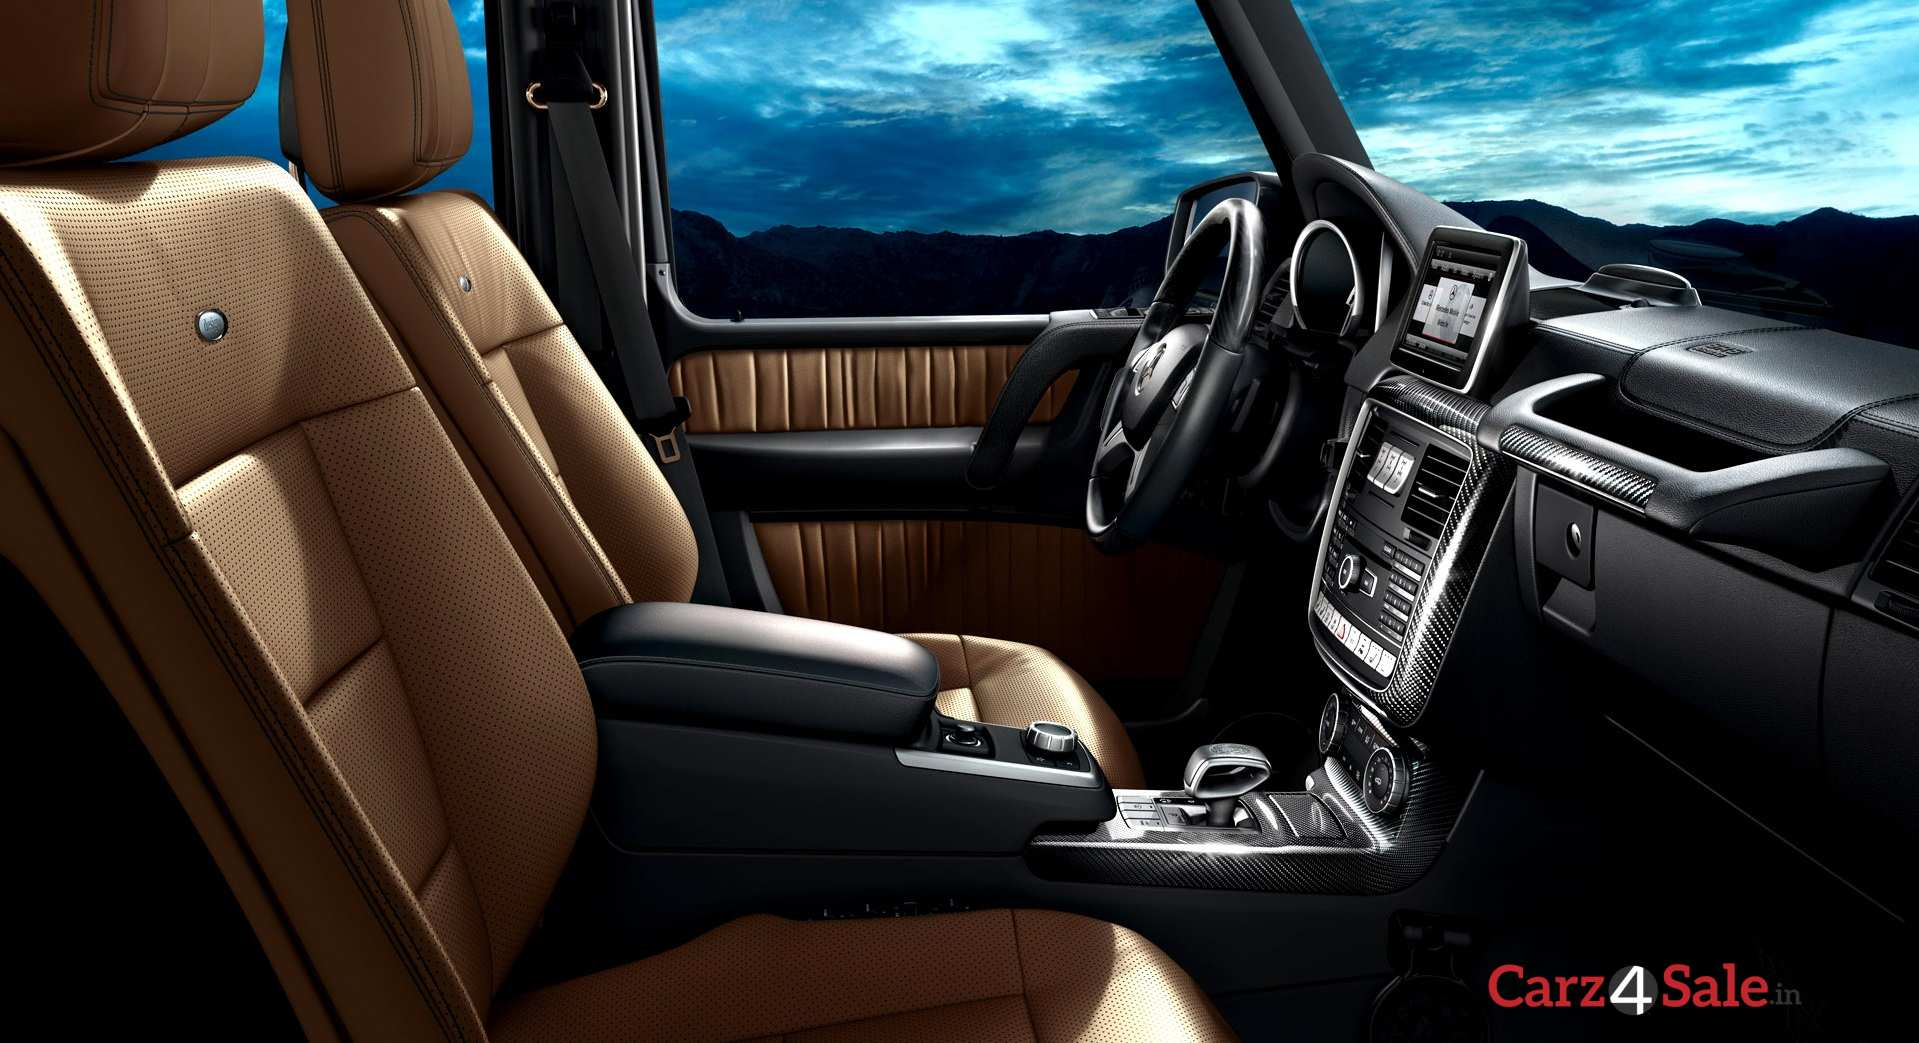 Mercedes Benz G63 Interior